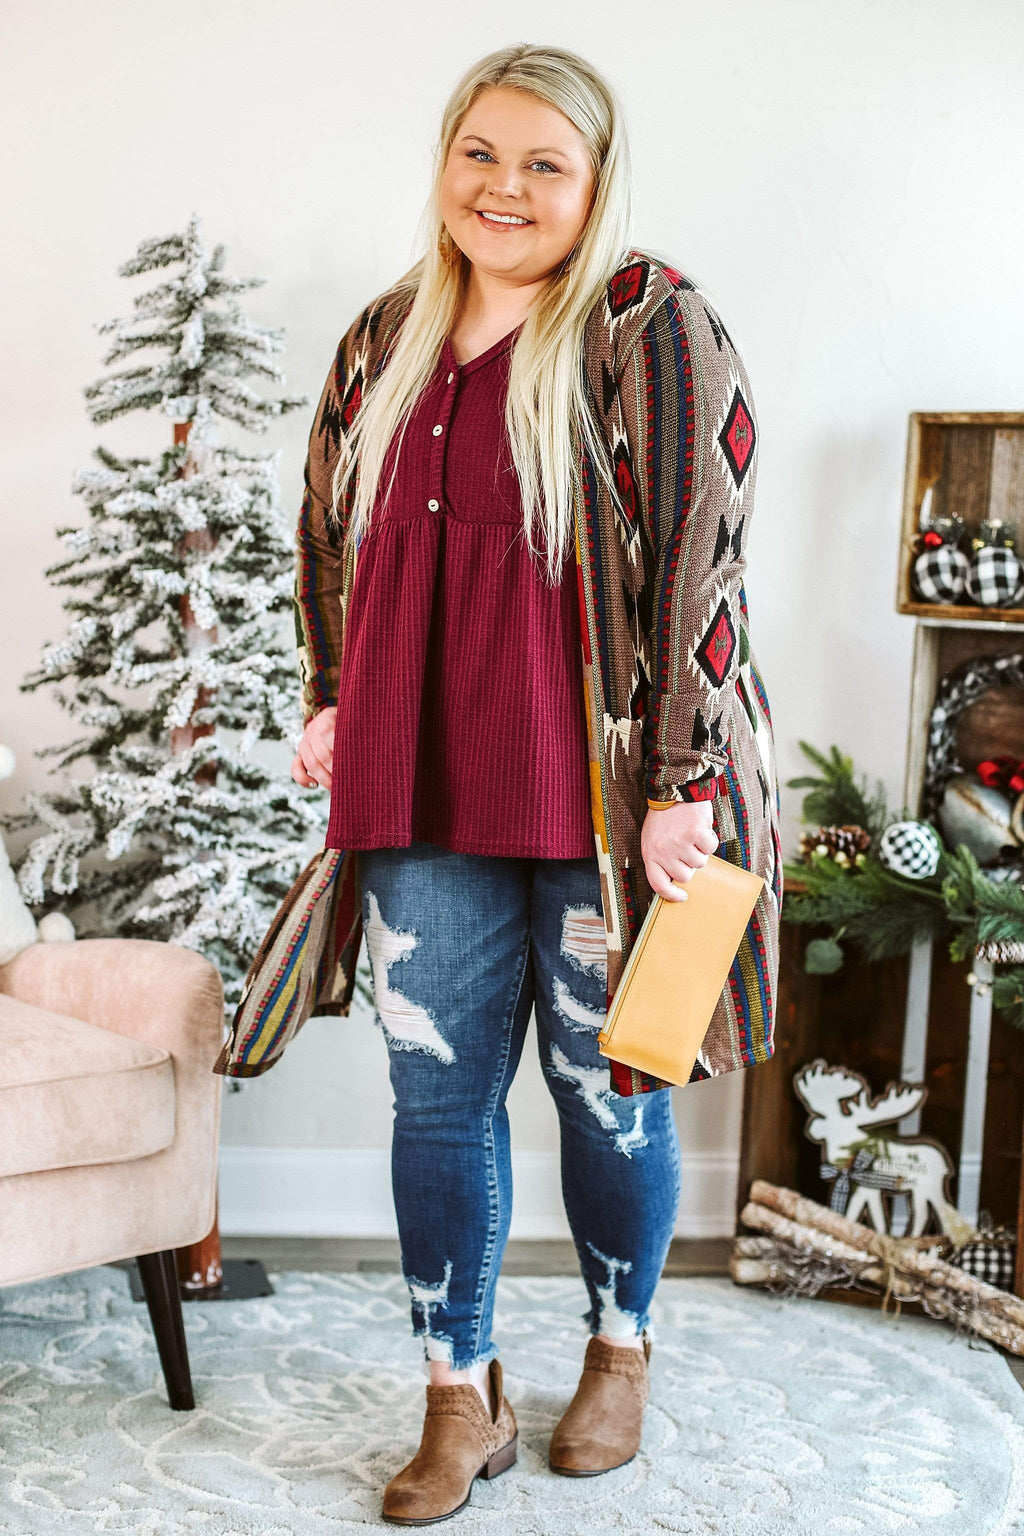 Glitzy Girlz Boutique Got Me Wondering Cardigan | Trendy Plus Size Cardigan